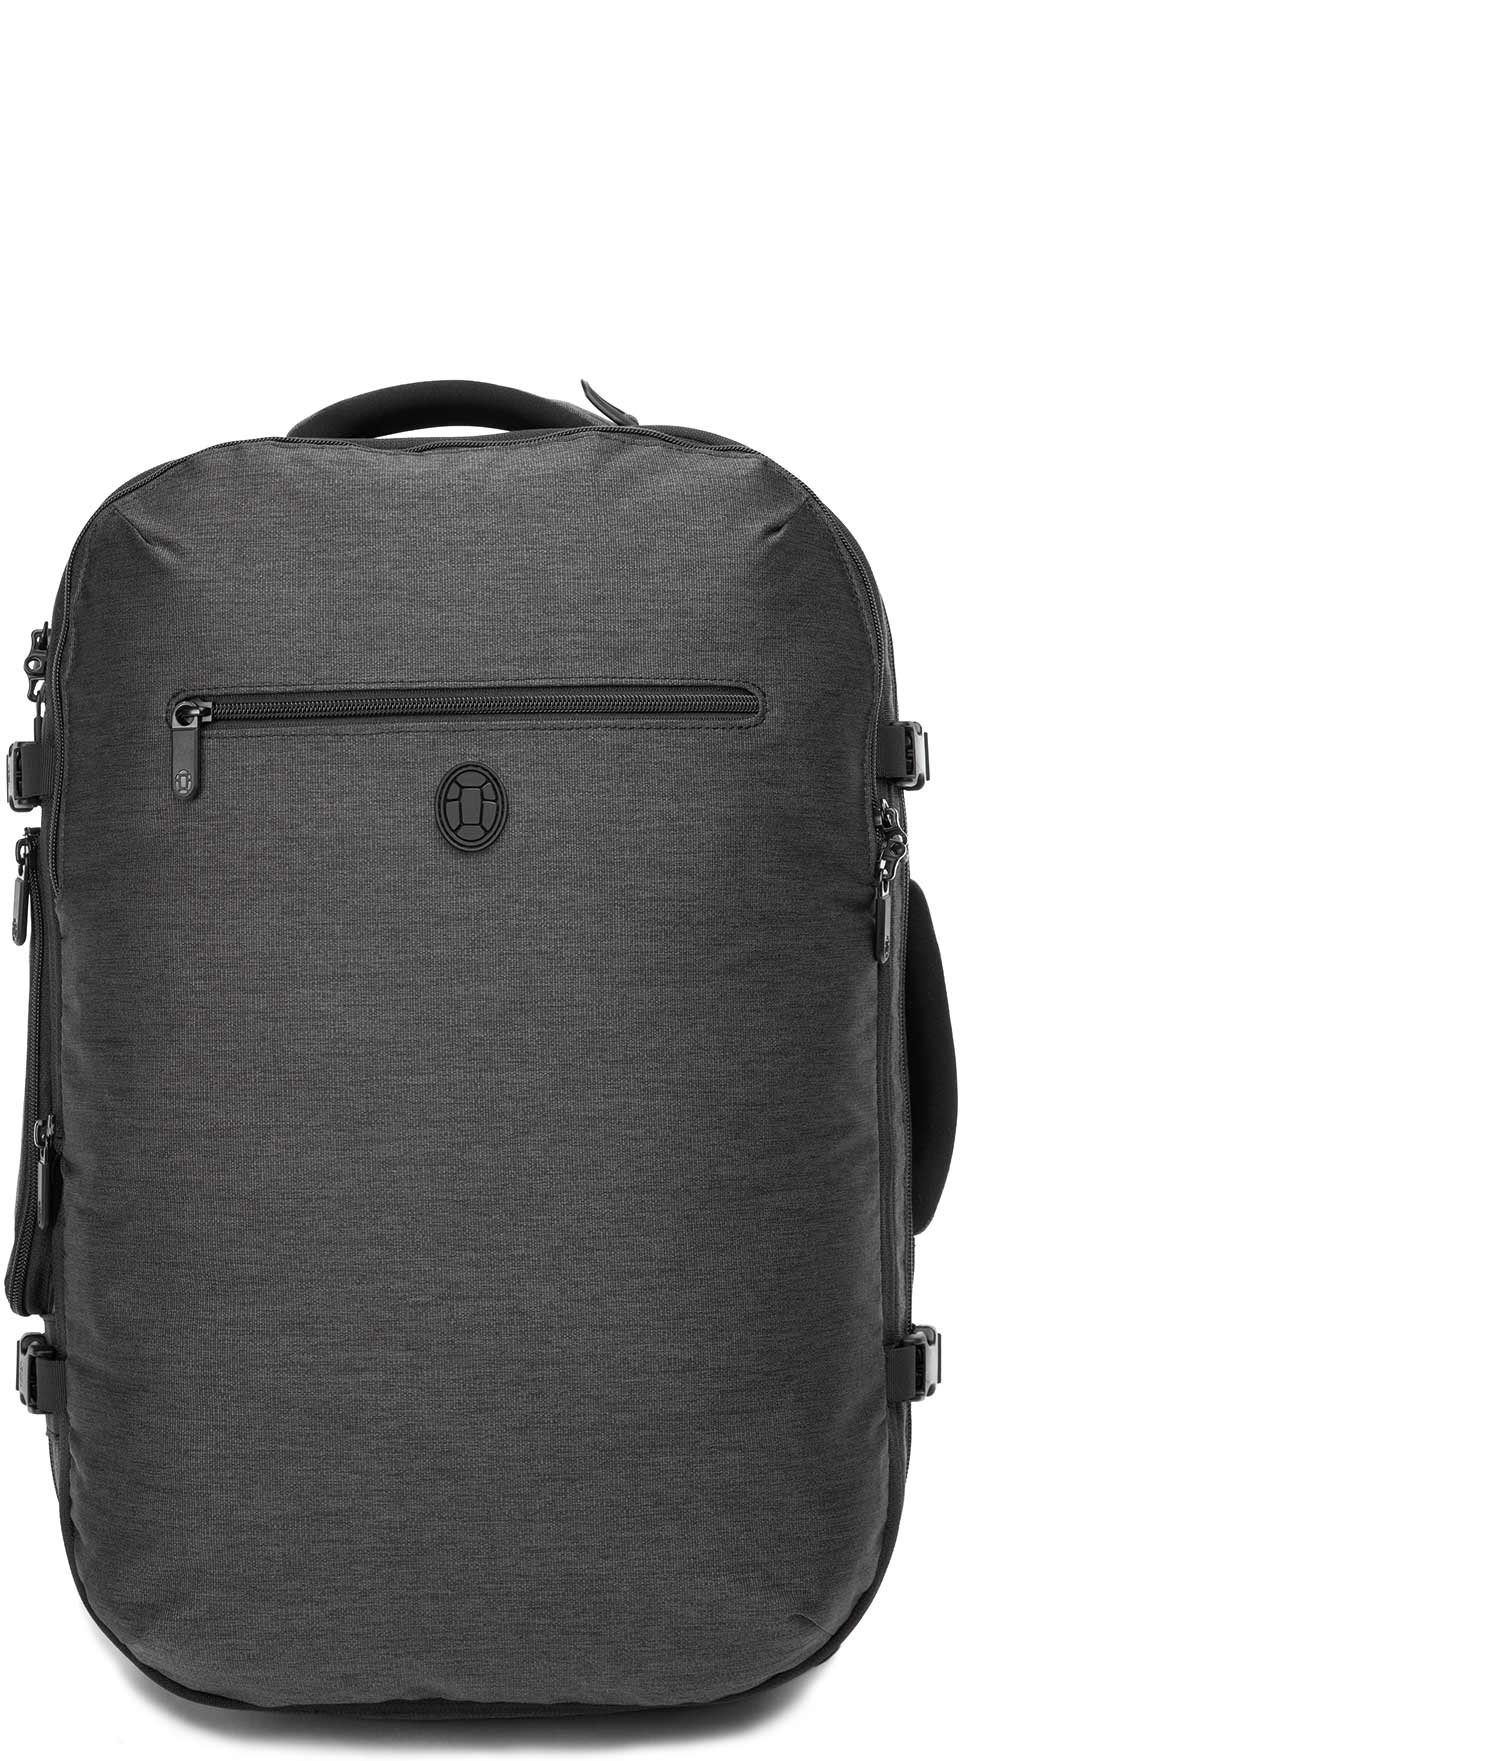 Setout Divide Backpack